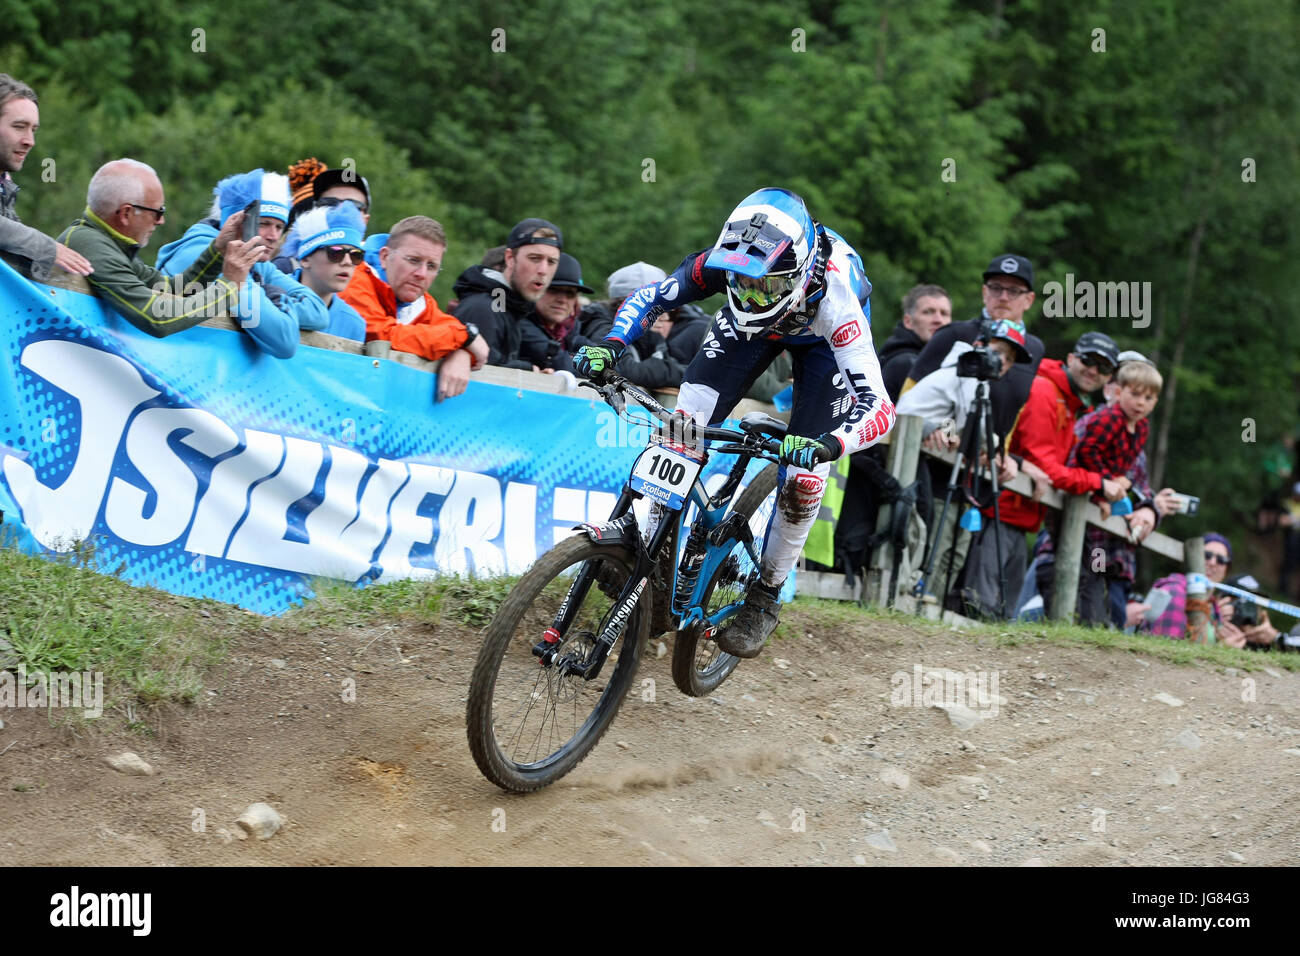 Fort William, Scotland. 4th June, 2017. Jacob Dickson at the Mountain Bike Downhill World Cup. - Stock Image